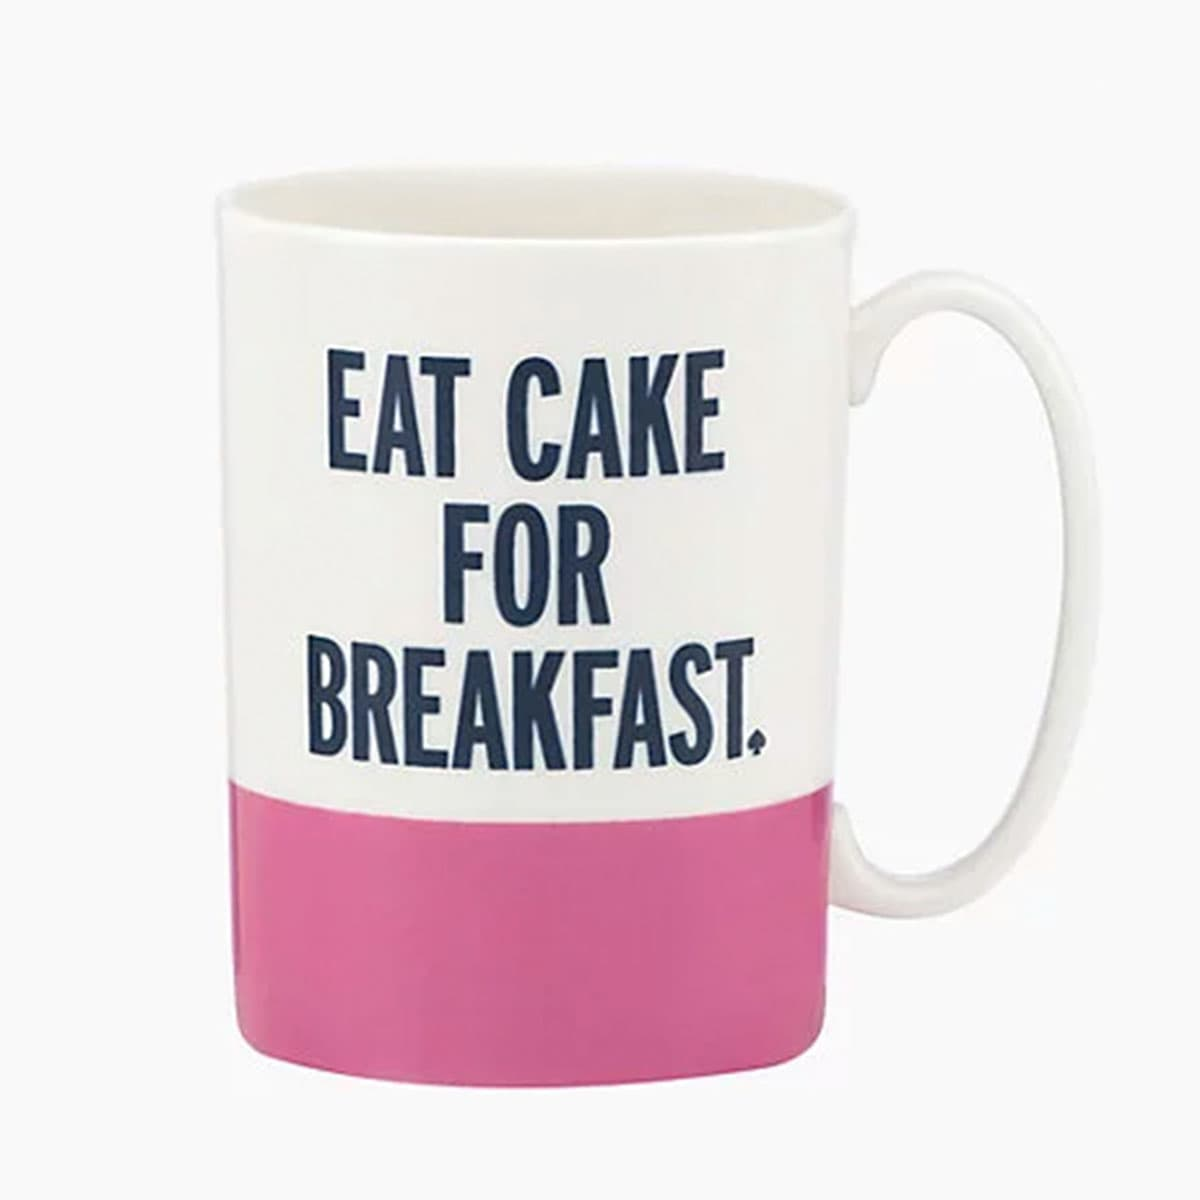 10 Wacky Mugs to Fun Up Your Desk: gallery image 11